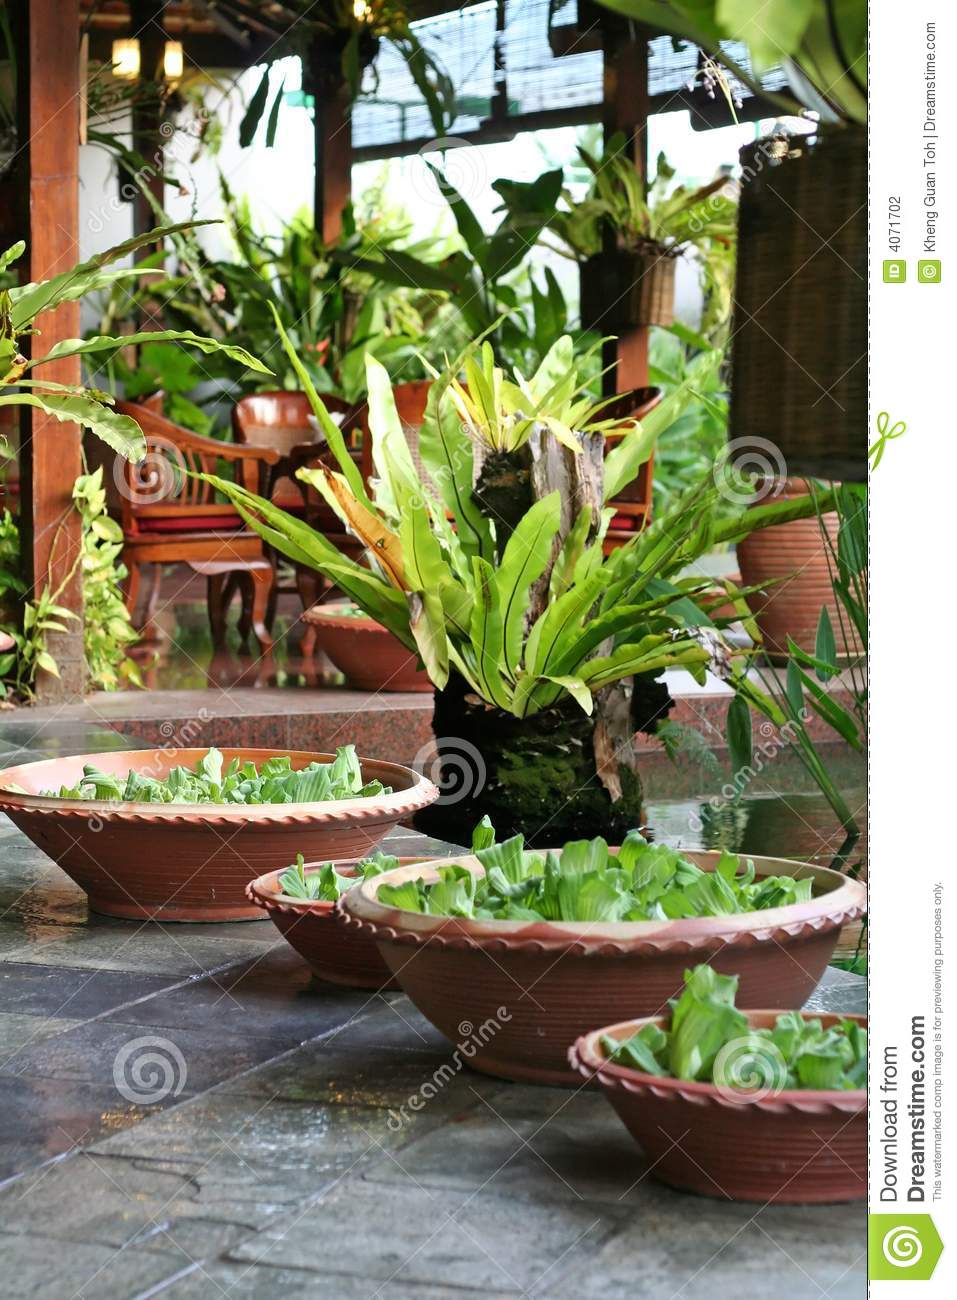 Balinese decor plants stock photography image 4071702 for Bali decoration accessories